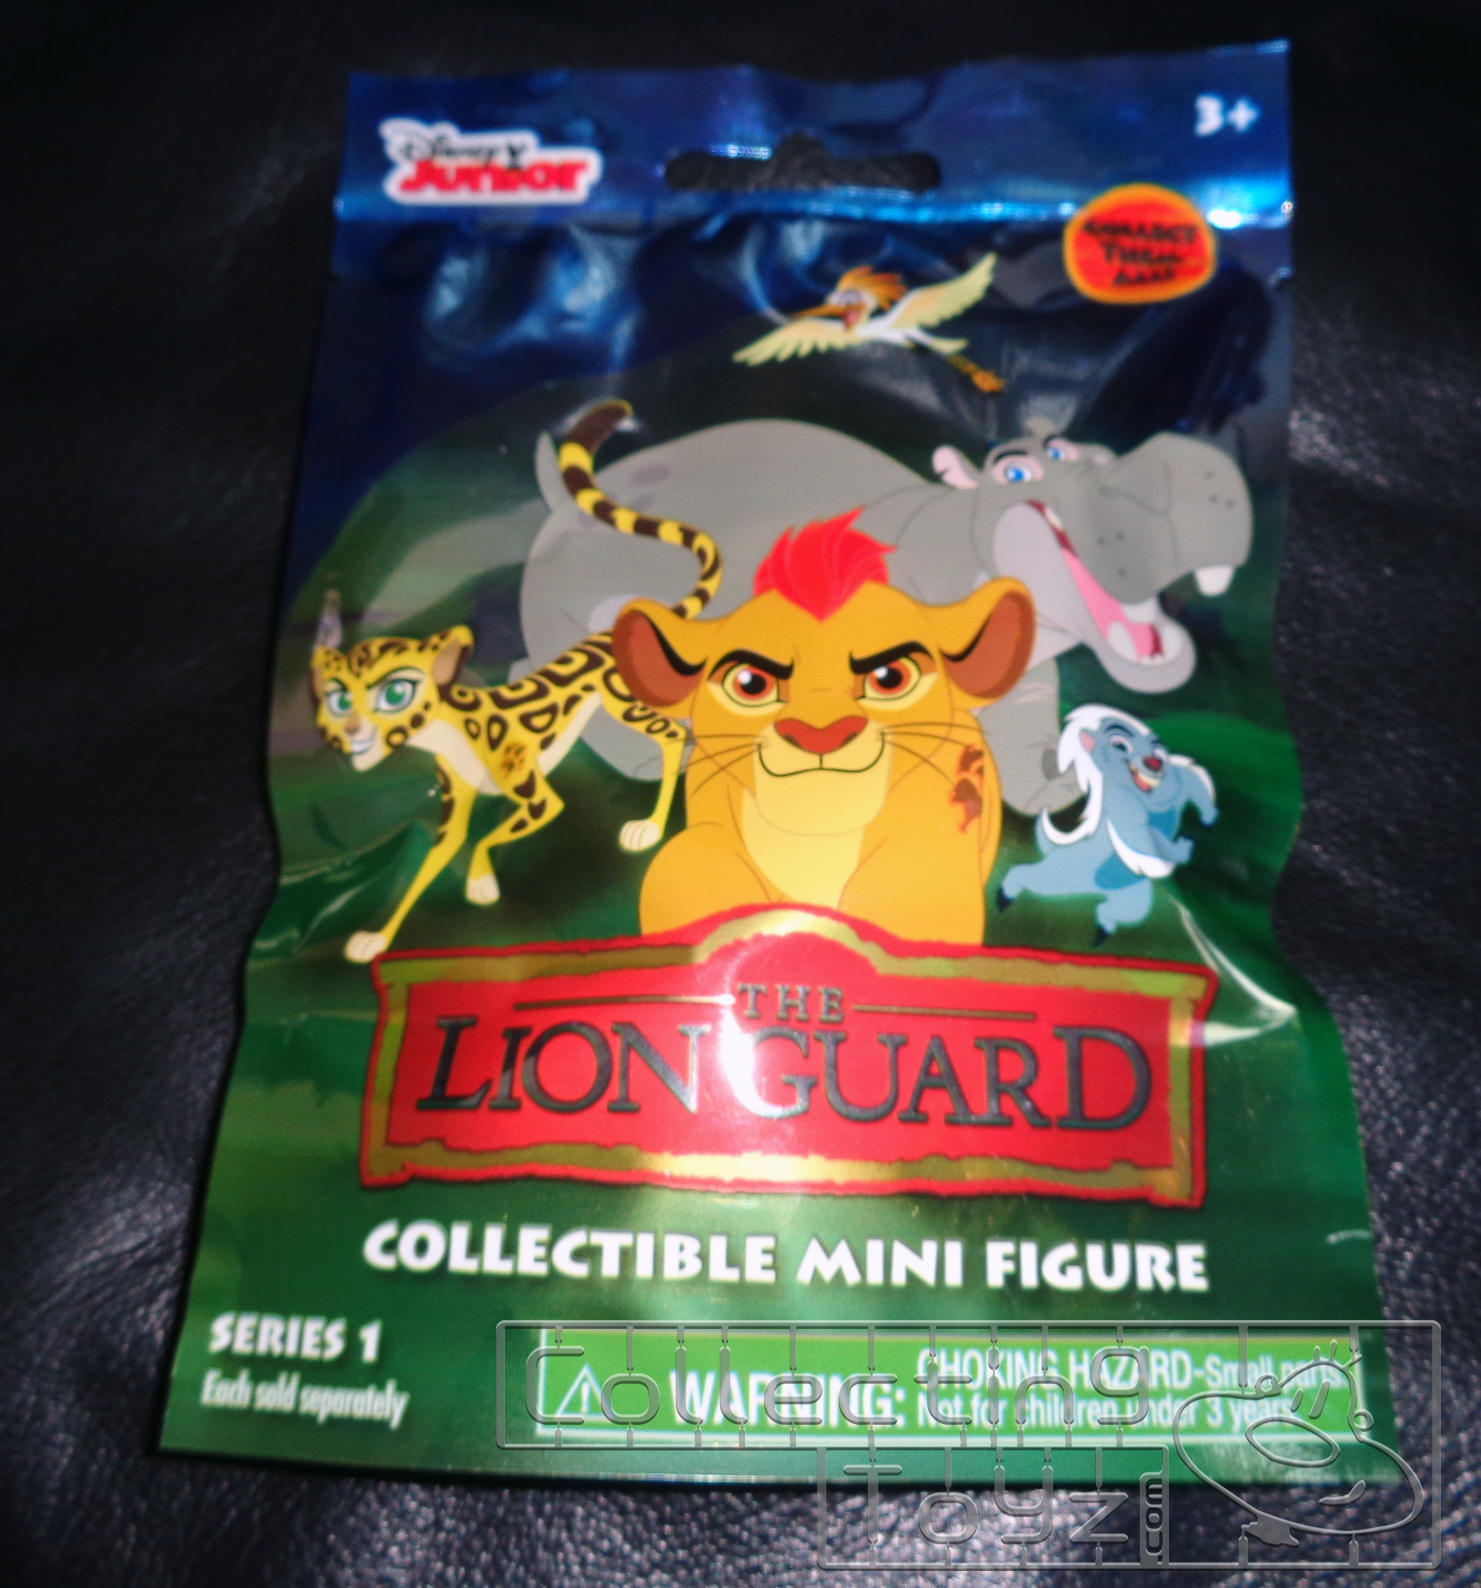 ef60b583cbb Disney Junior's The Lion Guard Collectible Mini Figure Blind Bag Series 1.  Picked this up a while back. You can pick these blind bags up at various ...